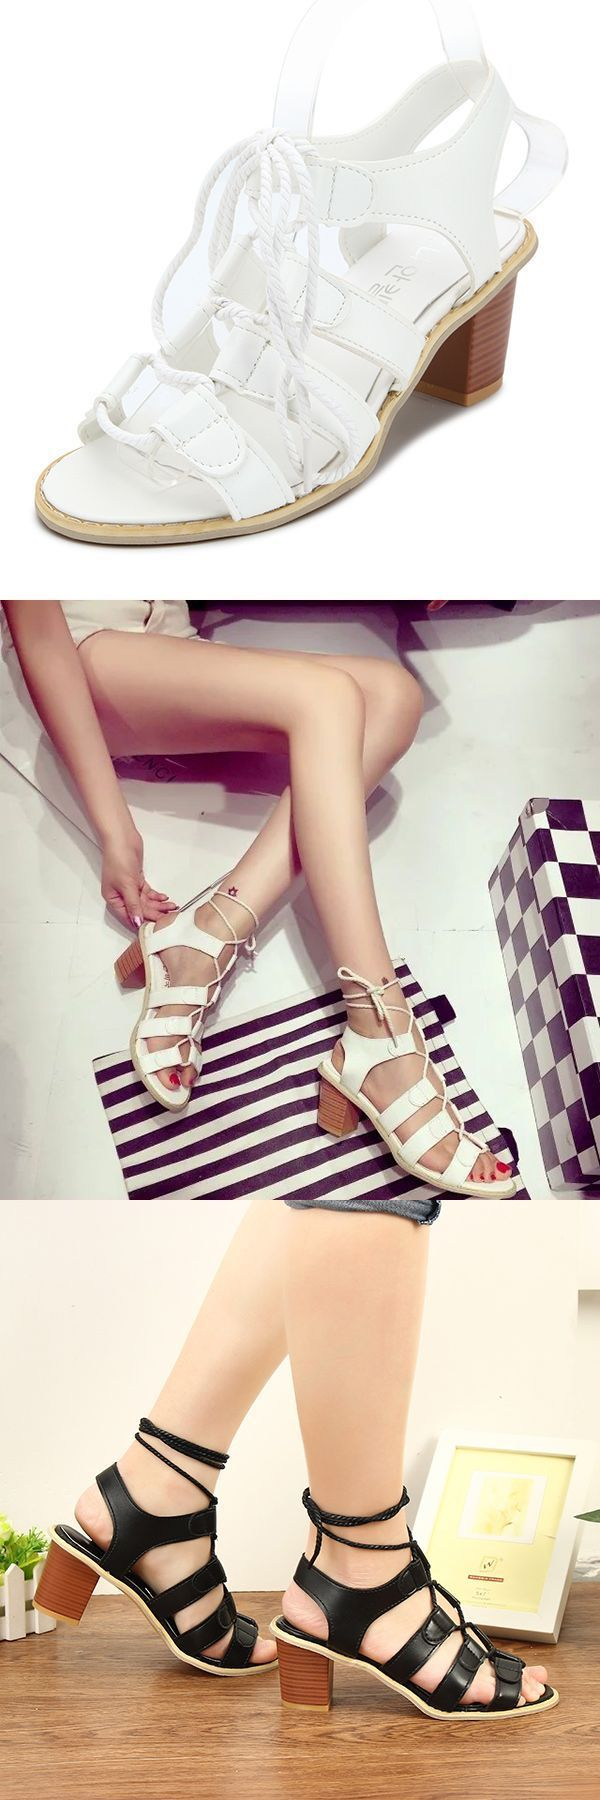 Summer women fashion comfortable heeled outdoor lace up casual heeled sandals shoes samp;h sandals #sandals #exuma #hurricane #sandals #hotels #sandals #j #crew #sandals #w #bottle #opener